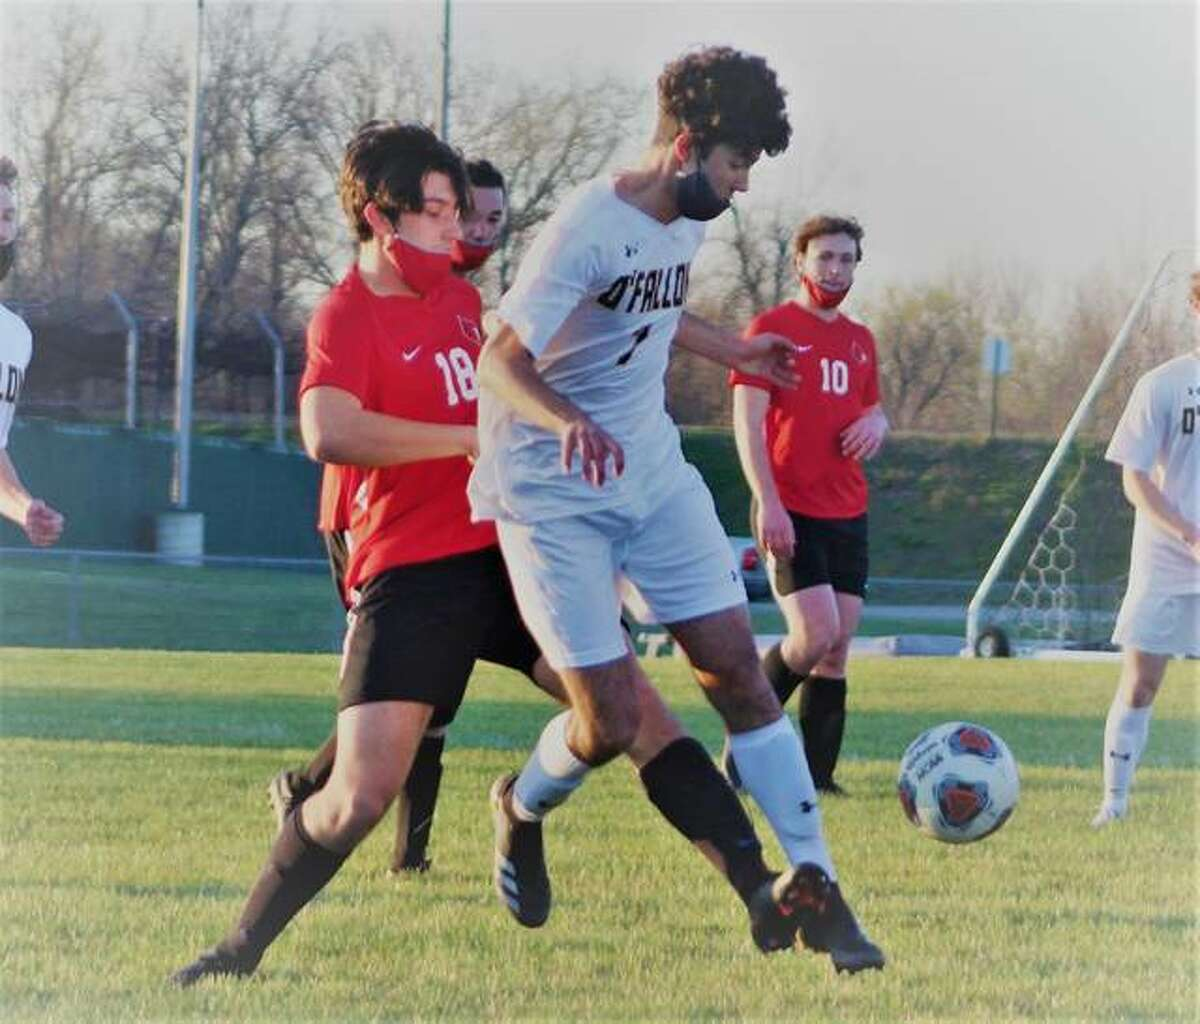 Alton's Justin Davison (18) scored in the first half of Wednesday night's game against Belleville East at Public School Stadium. He is shown Monday in action against O'Fallon at AHS.